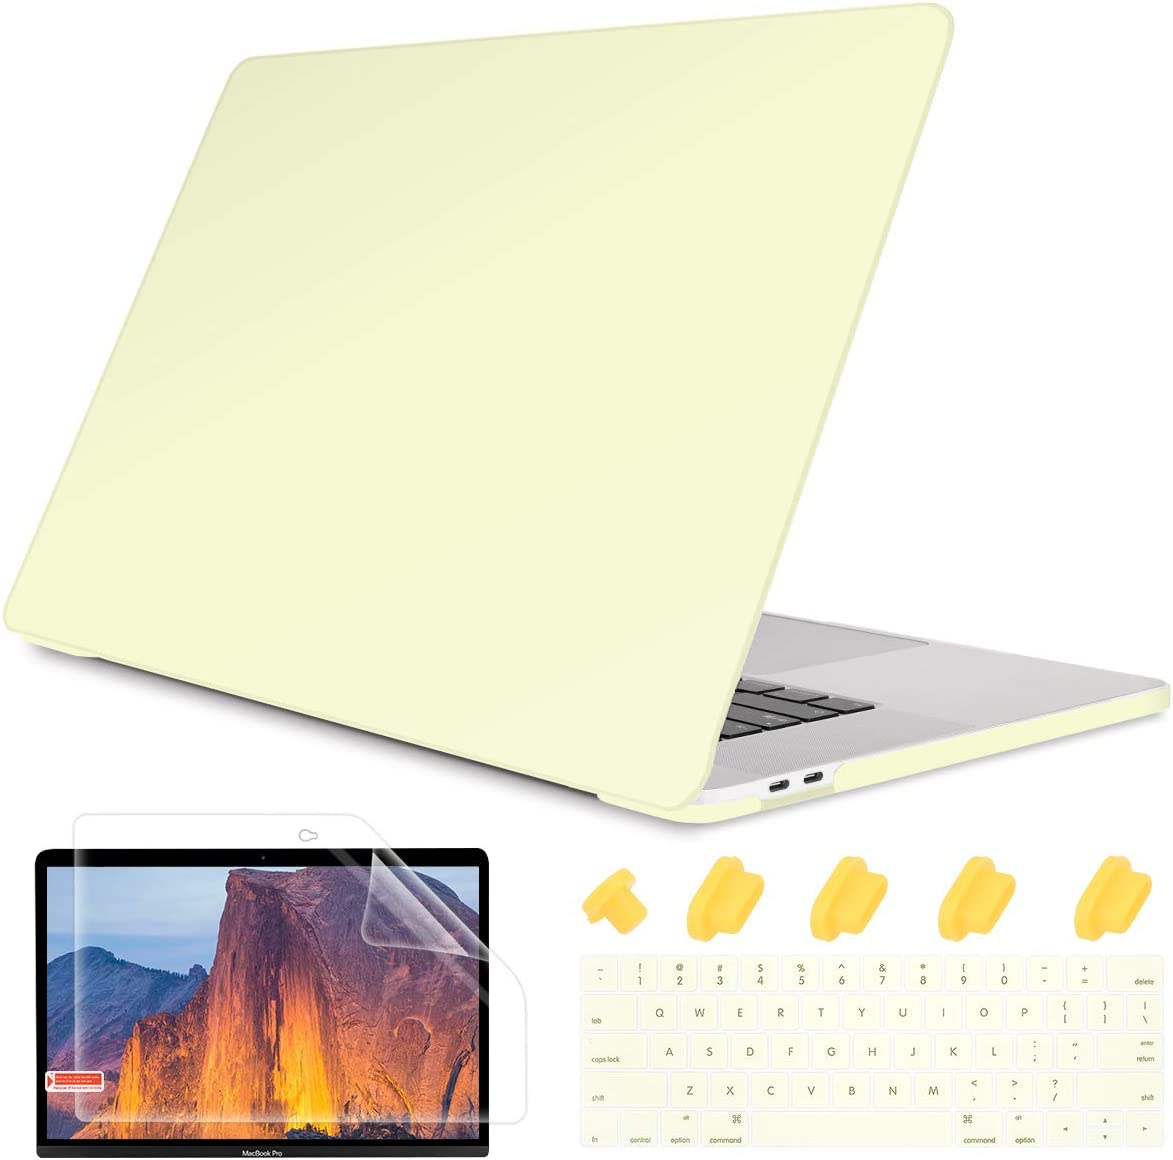 """May Chen Laptop Case for MacBook Pro 13"""" (2019/2018/2017/2016) w/Keyboard Cover and Screen Protector Plastic Hard Shell Case A2159/A1989/A1706/A1708 Touch Bar 3 in 1 - Cream Yellow"""